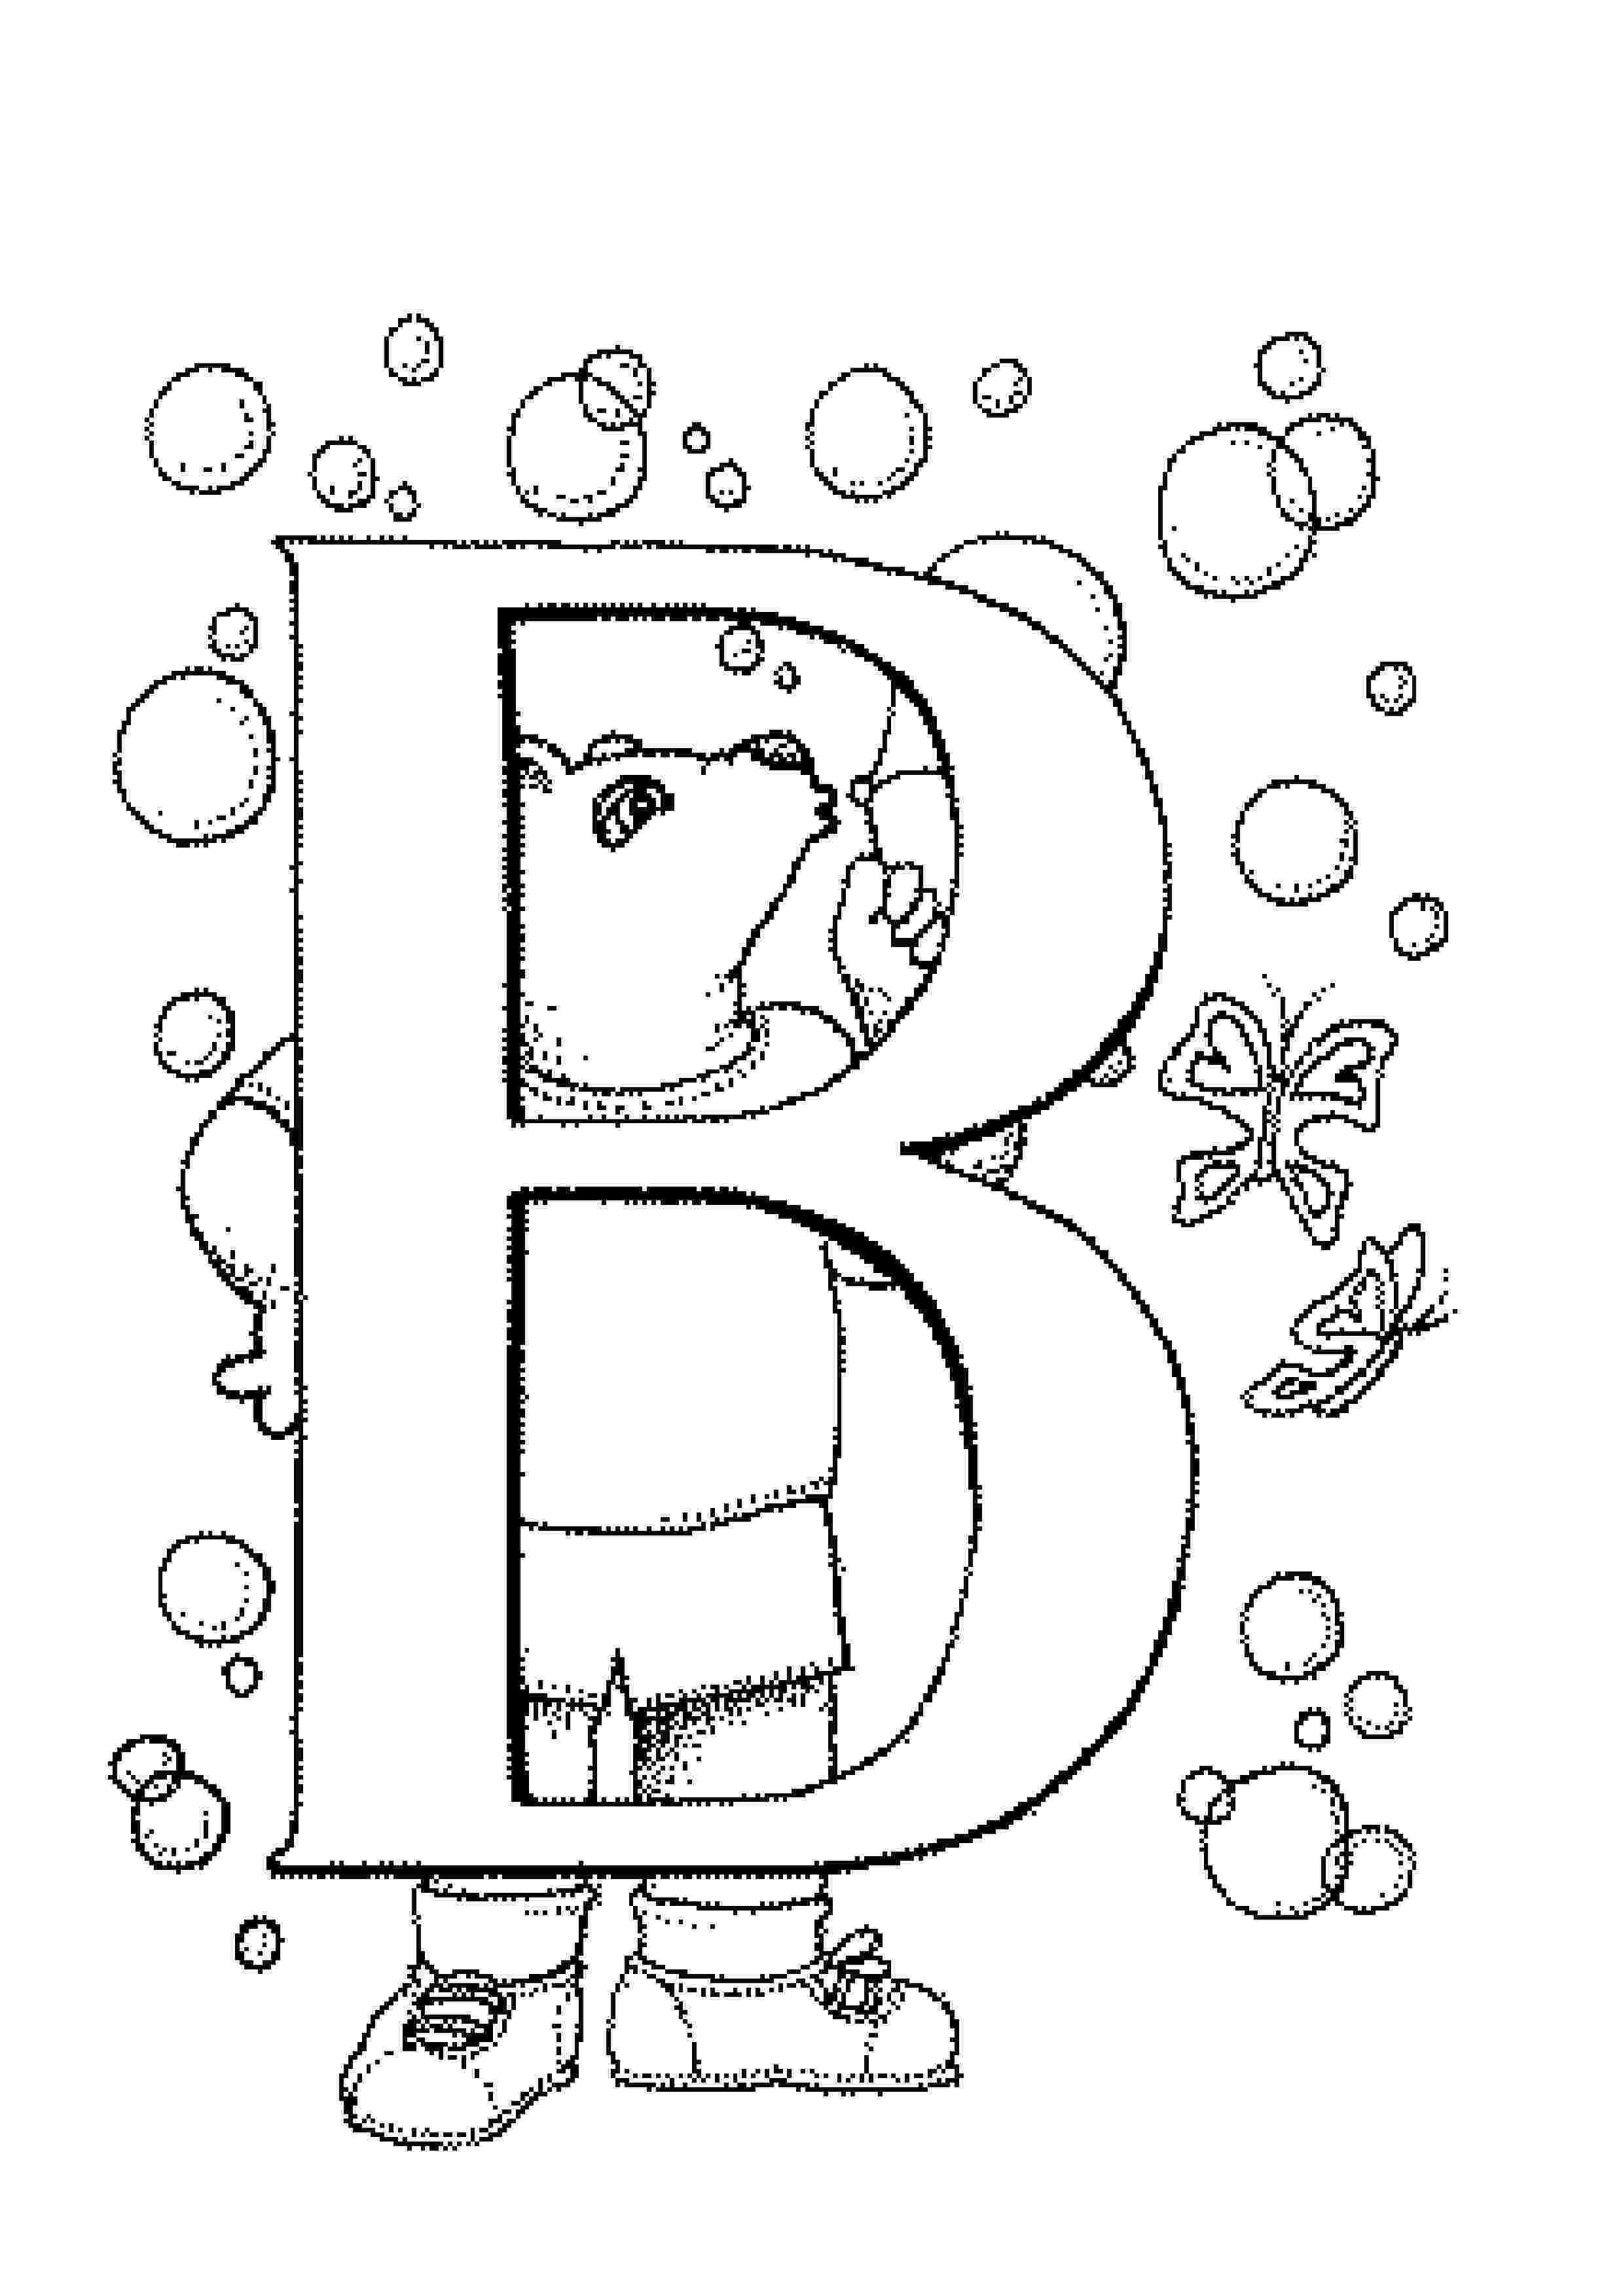 alphabet coloring book printable alphabet coloring pages getcoloringpagescom printable book alphabet coloring